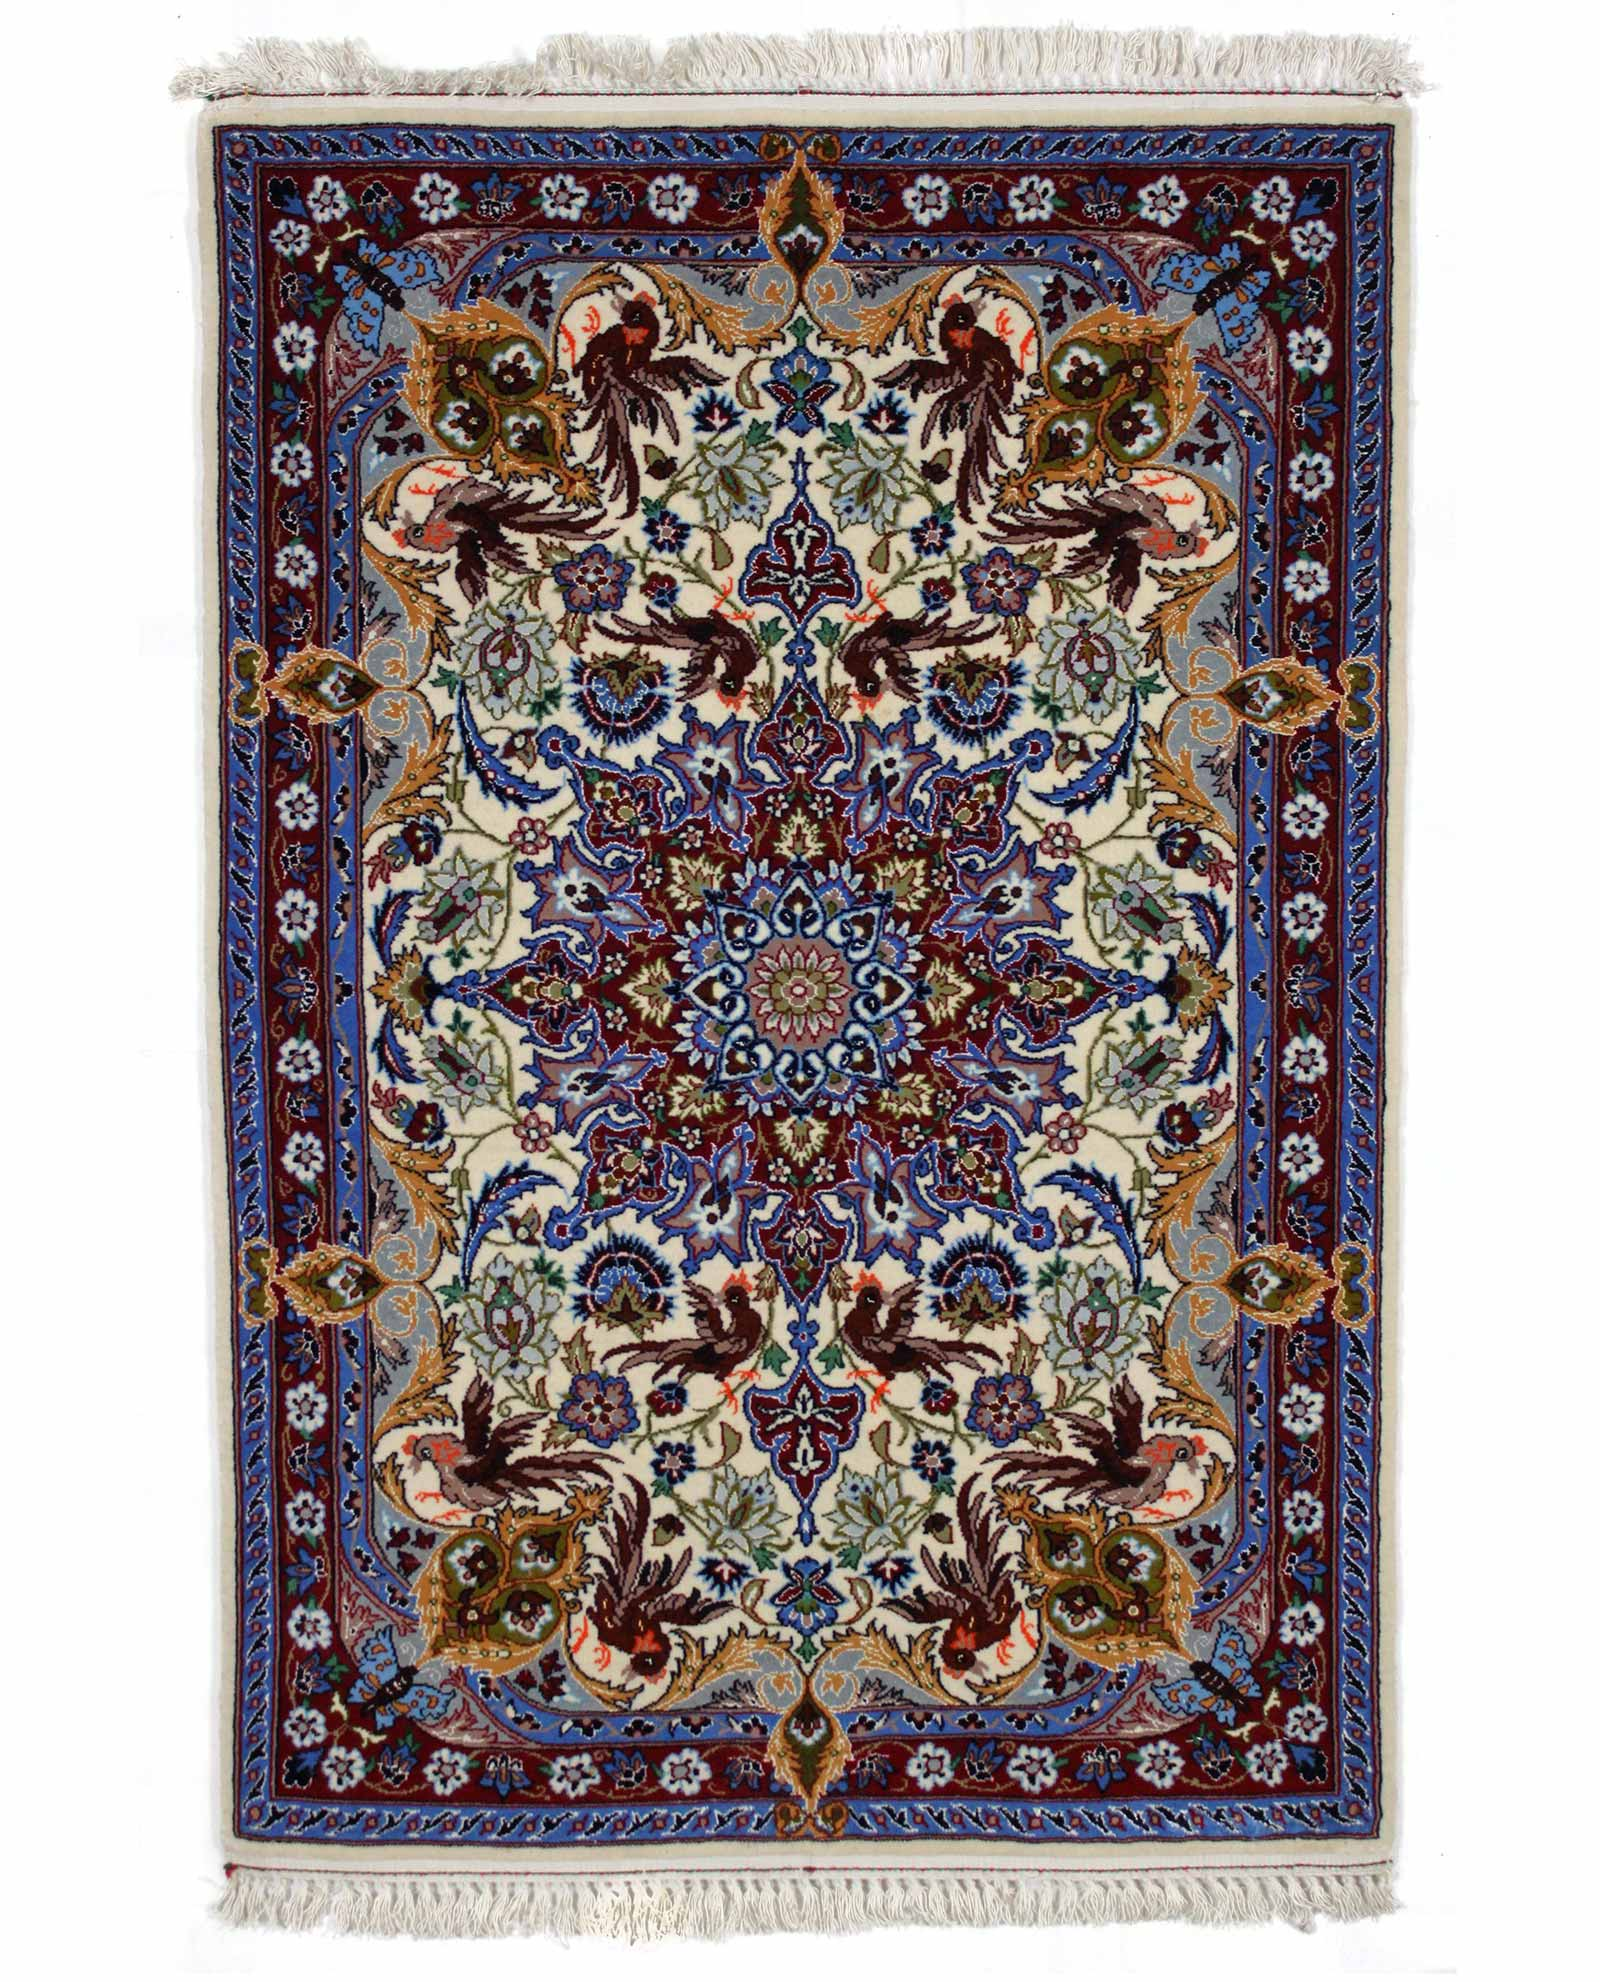 tapis persan isfahan 13859 iranian carpet. Black Bedroom Furniture Sets. Home Design Ideas